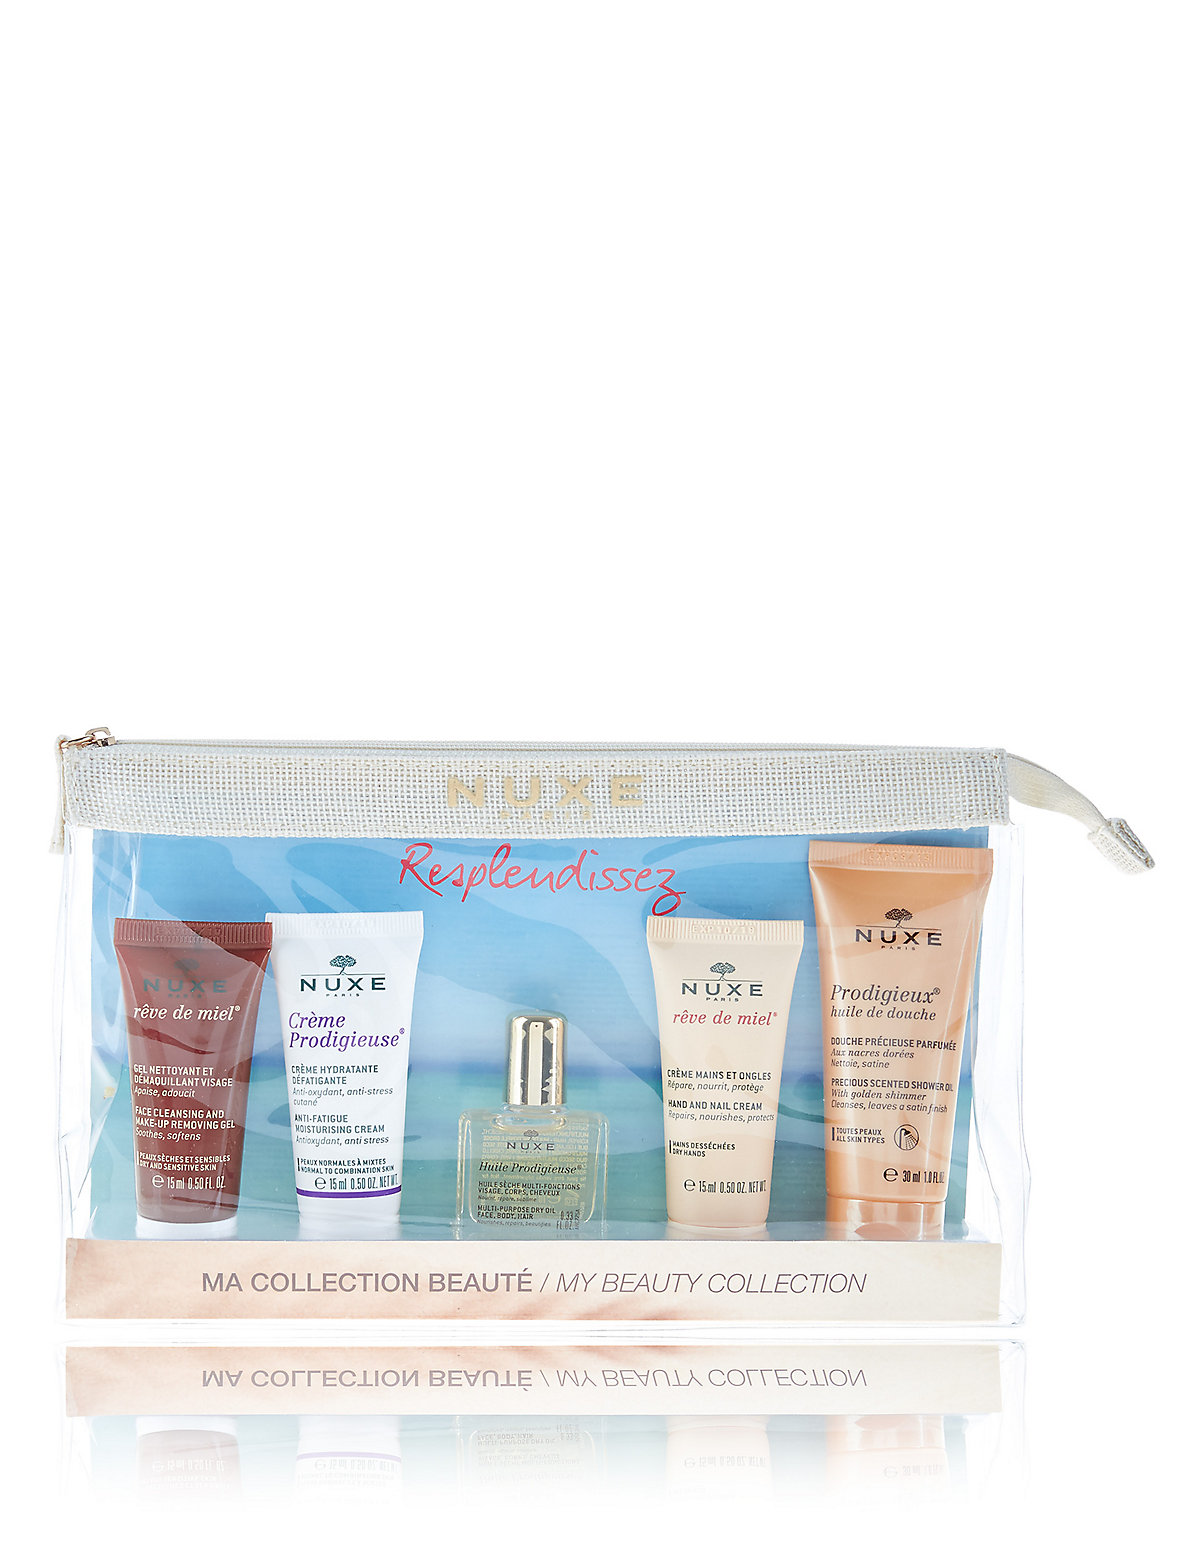 NUXE Travel Kit 2017